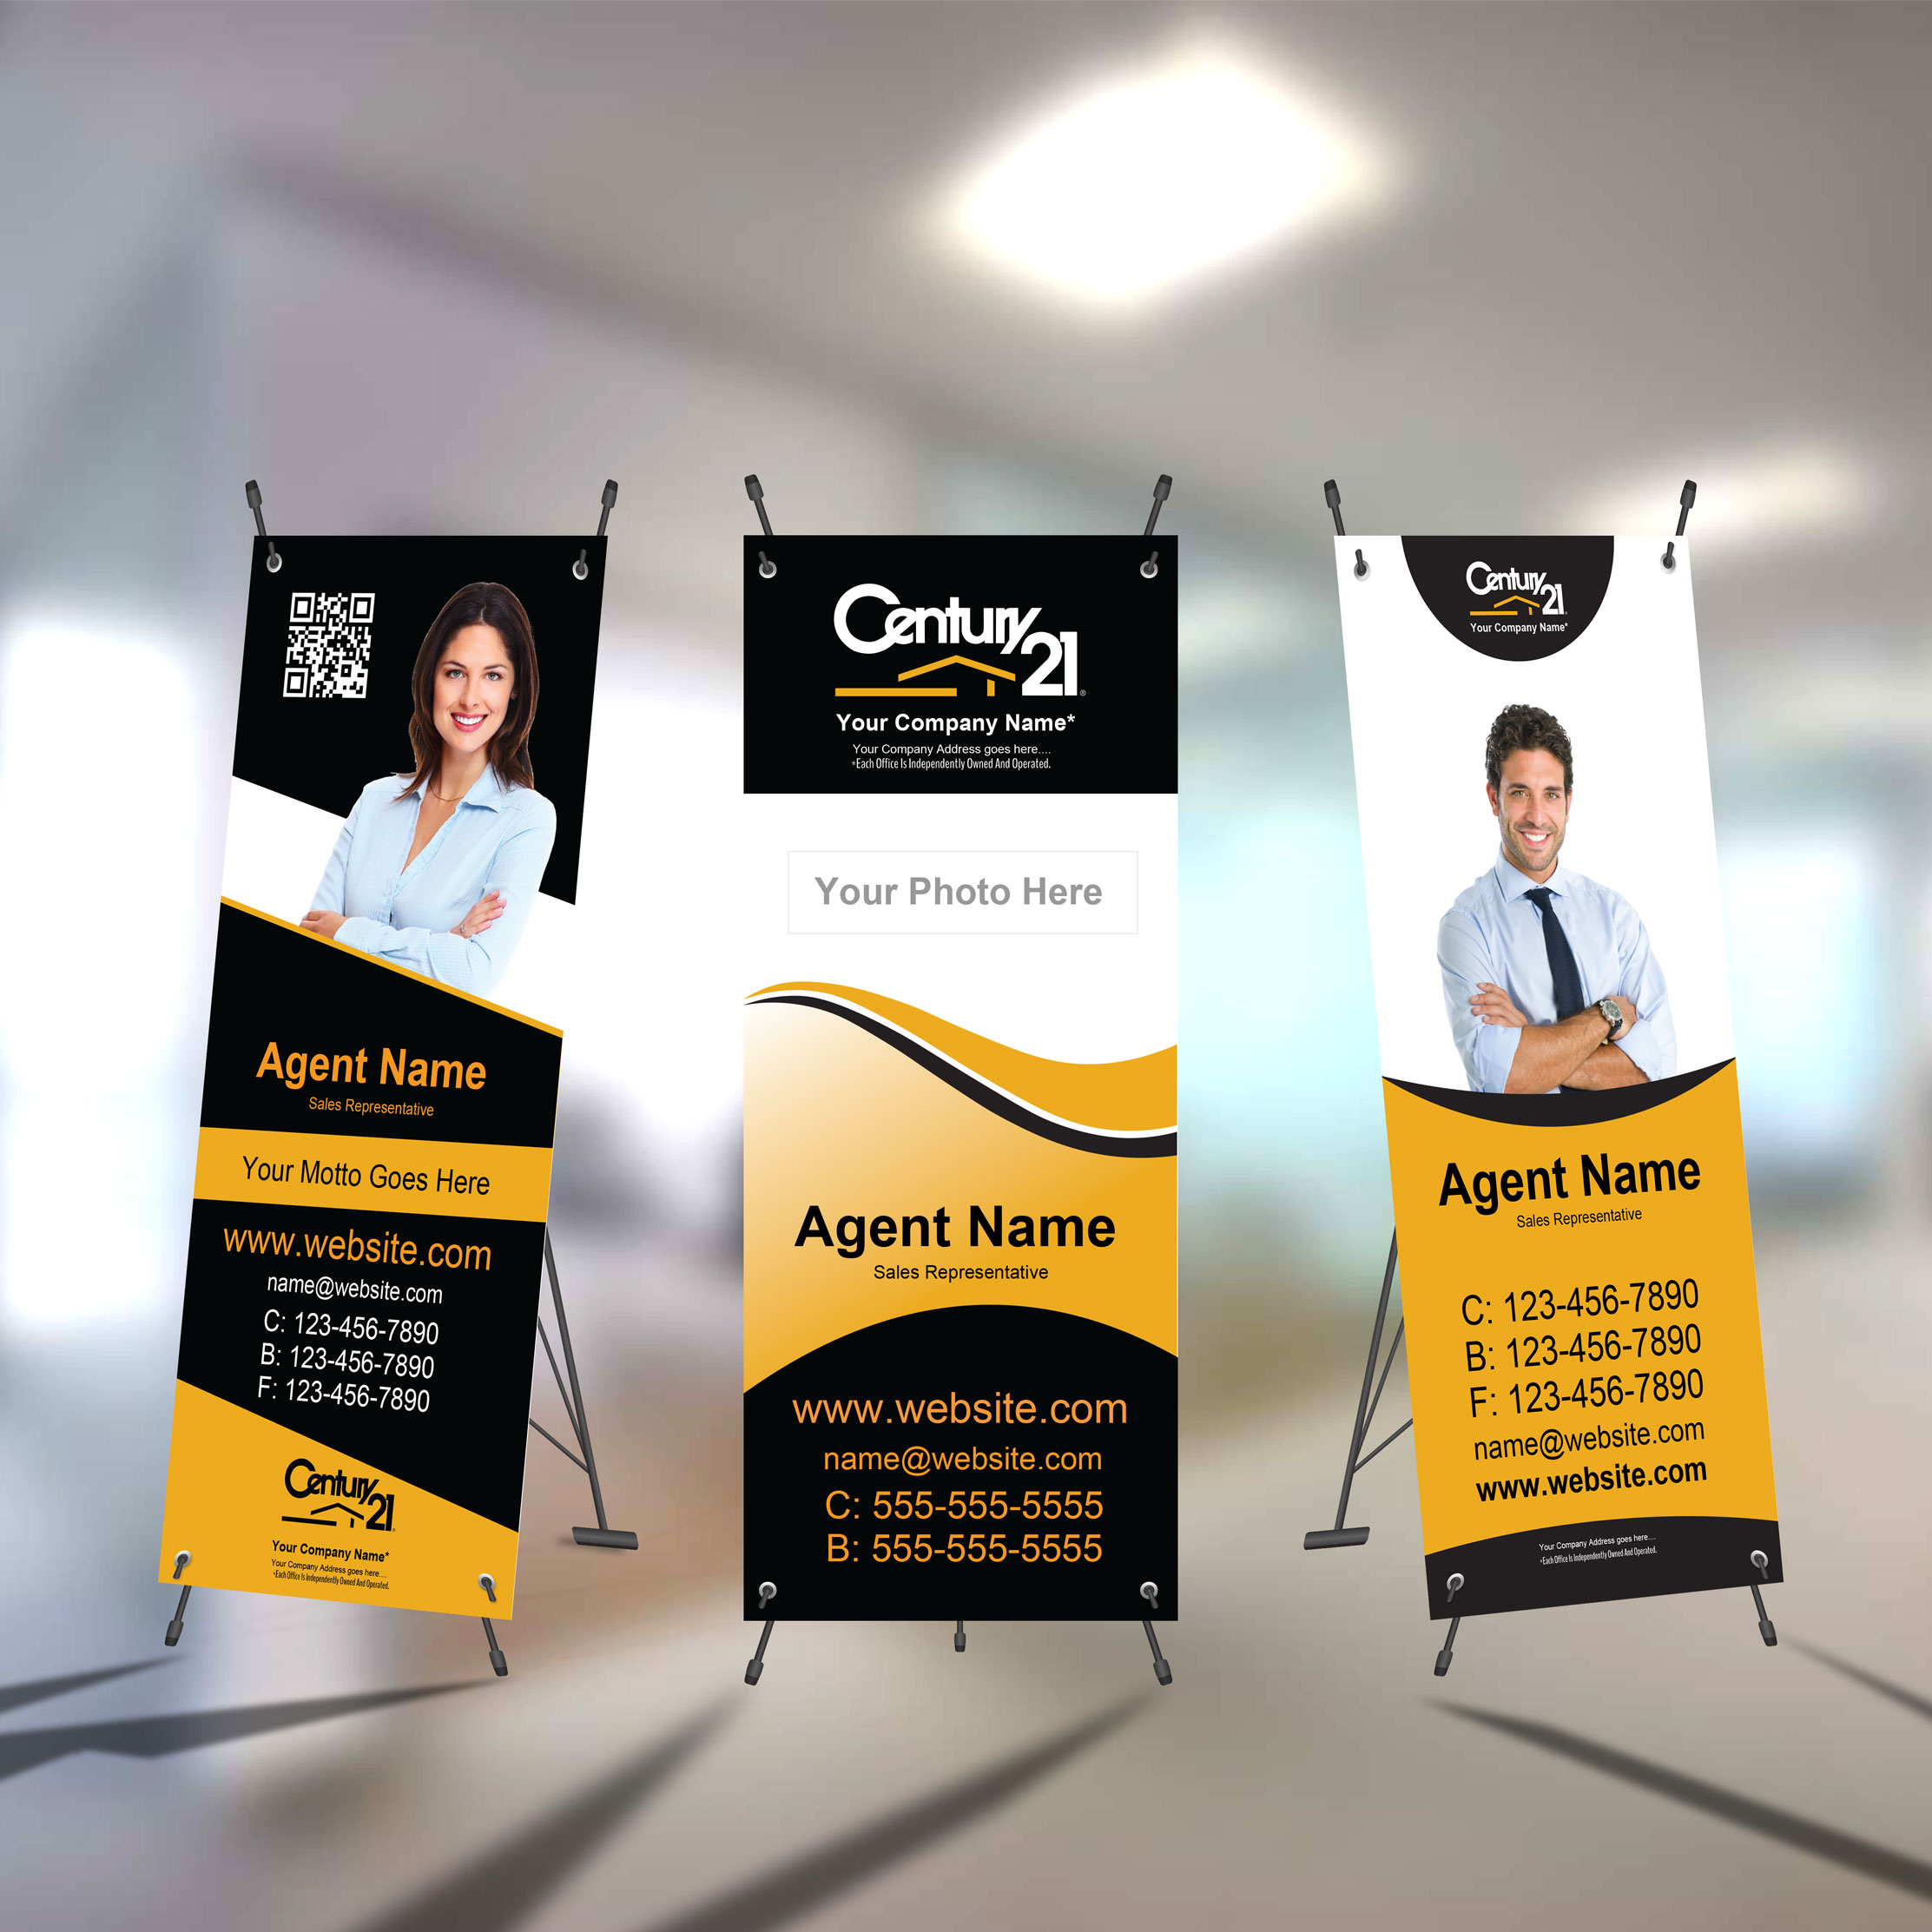 X-Frame Banners<br><br> - Century 21